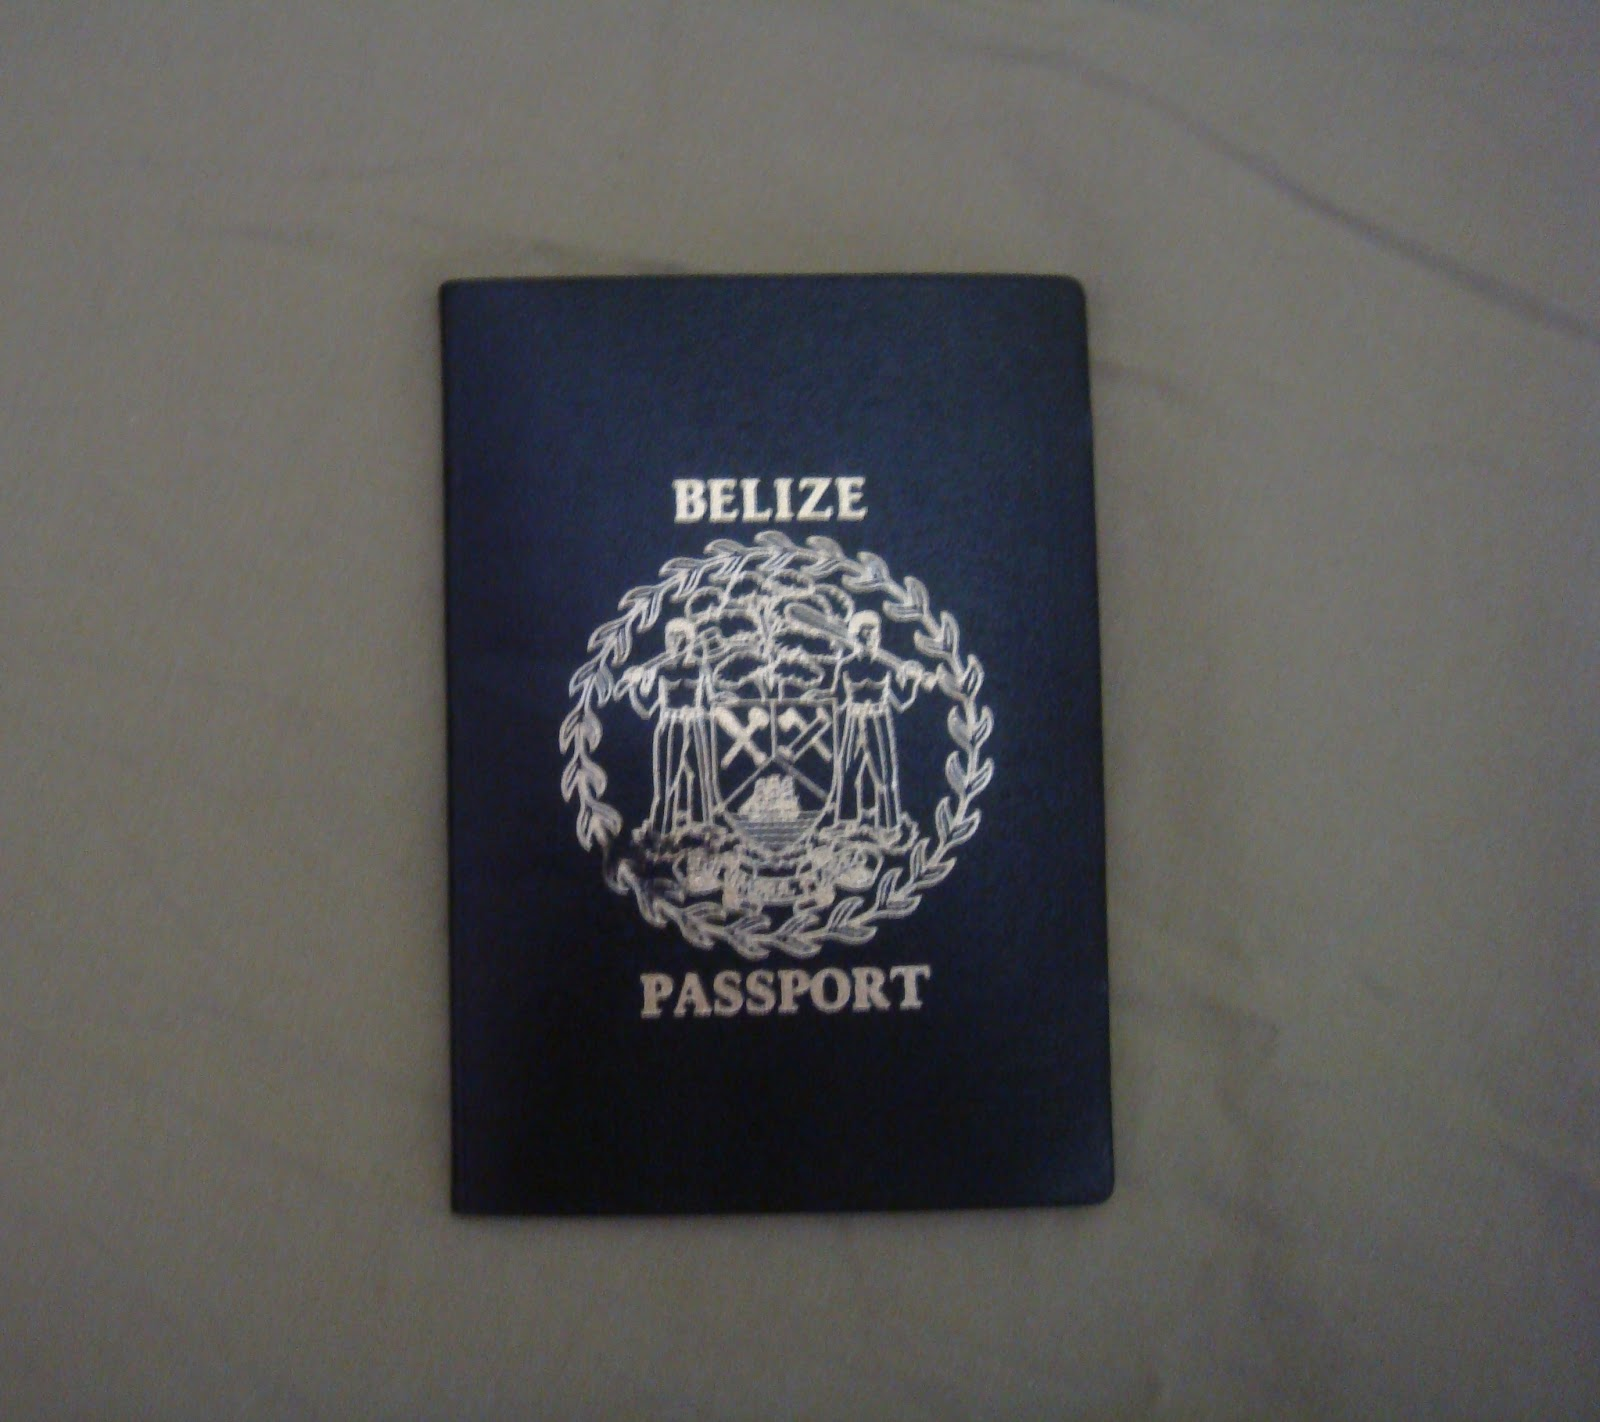 Requirements for application for belize passport notary studio requirements for application for belize passport notary studio city los angeles no hassle notary public falaconquin